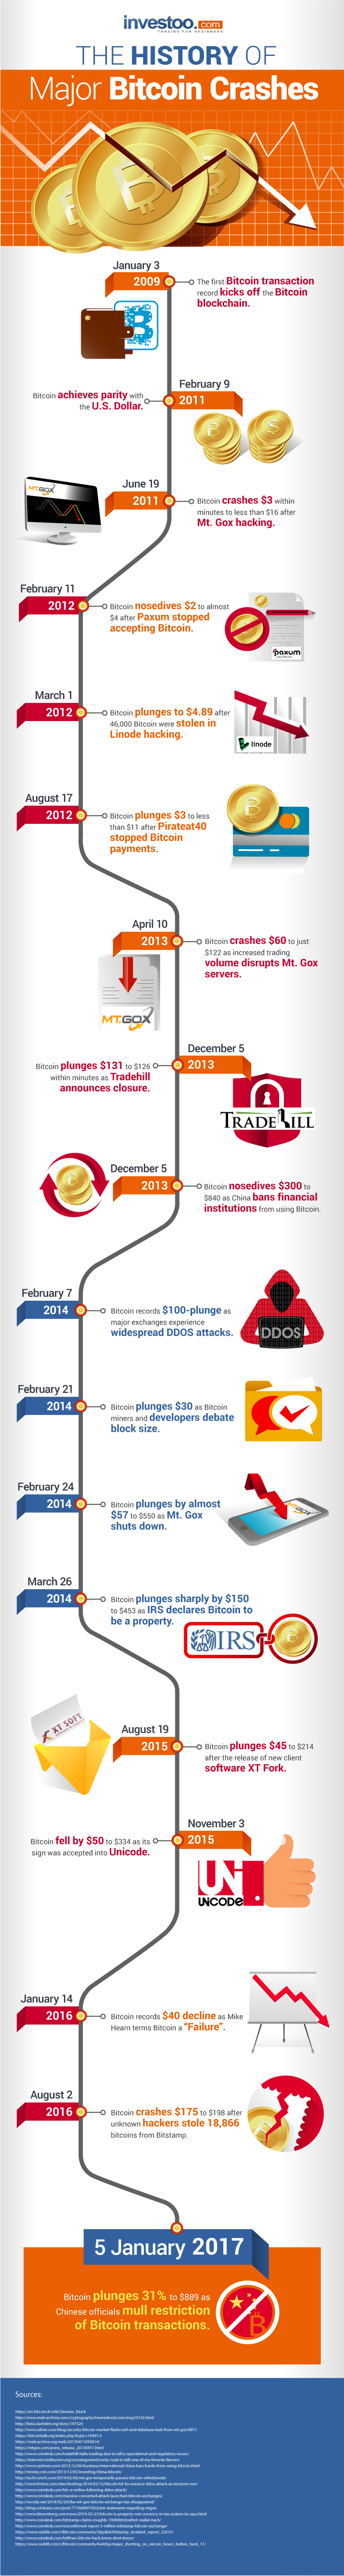 Infographic: History of Bitcoin Crashes